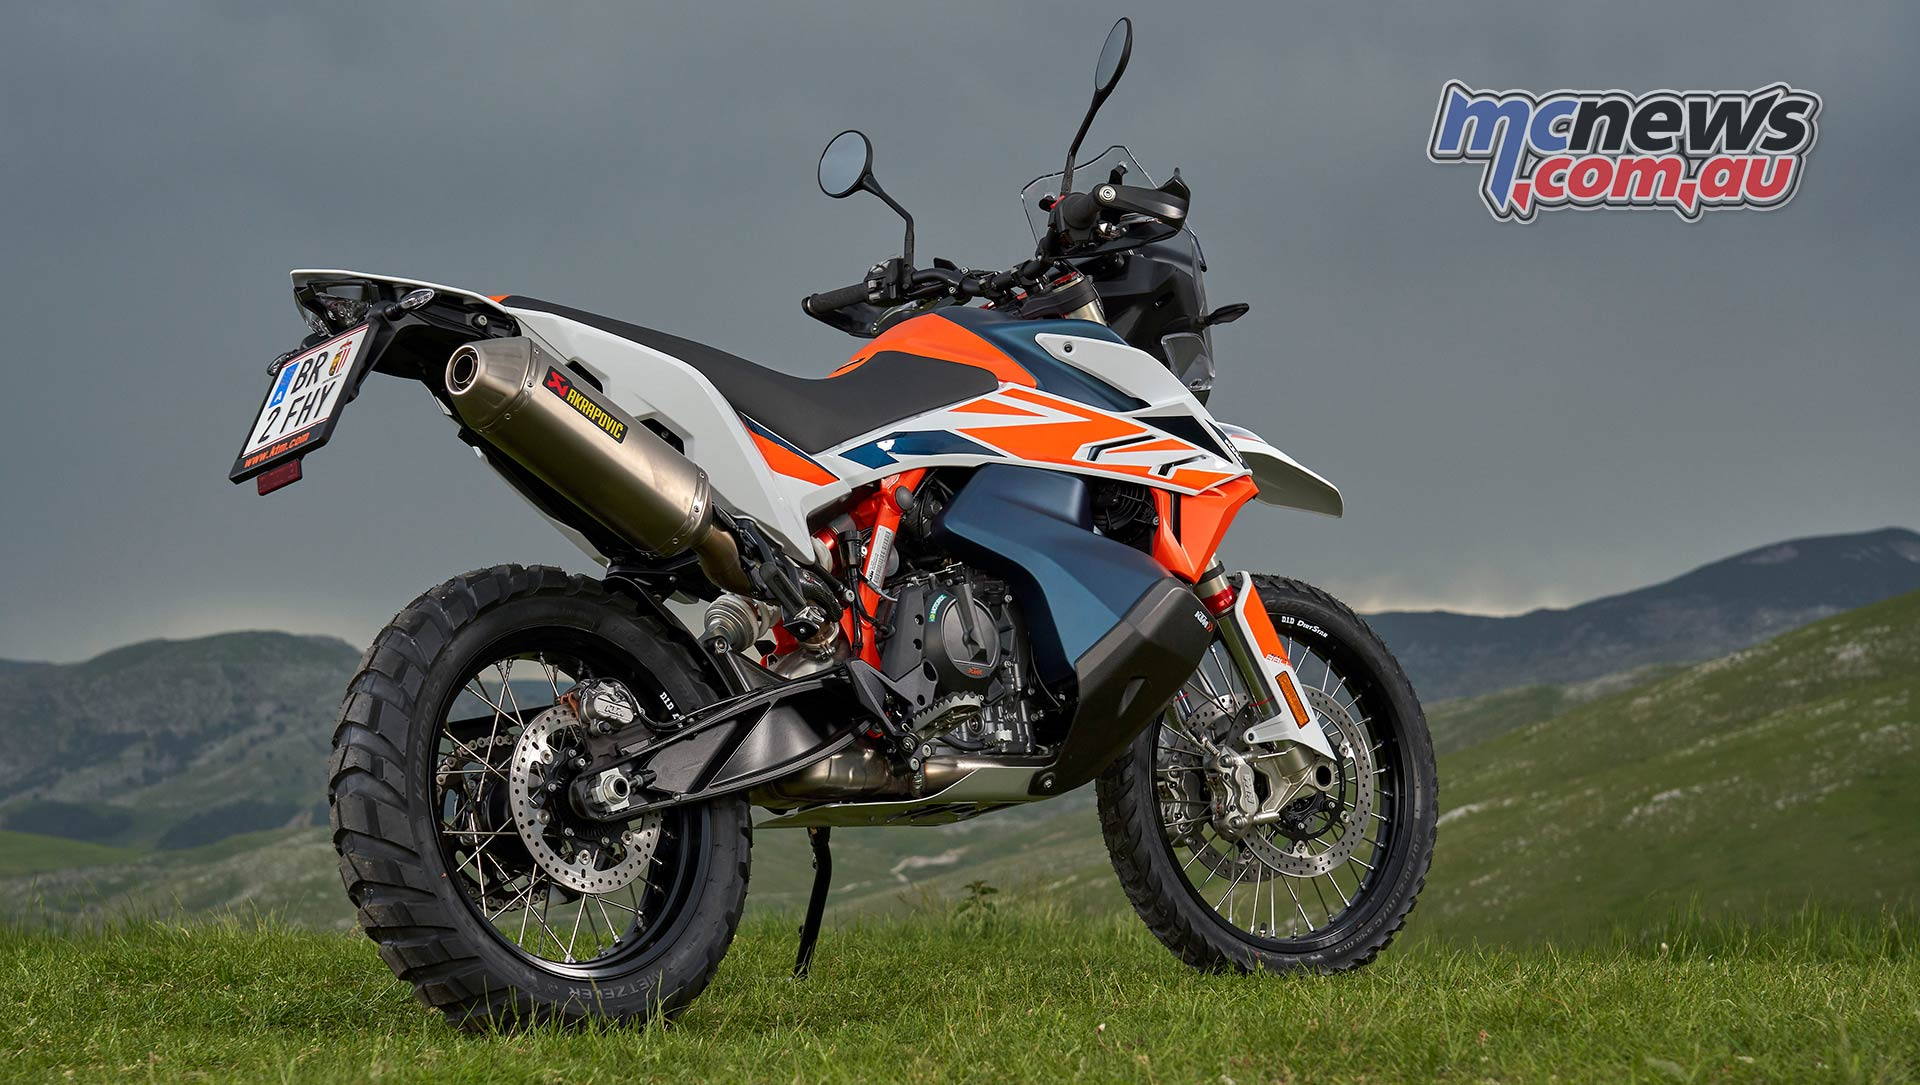 Ktm 790 Adventure Rally R Limited Edition 500 Units